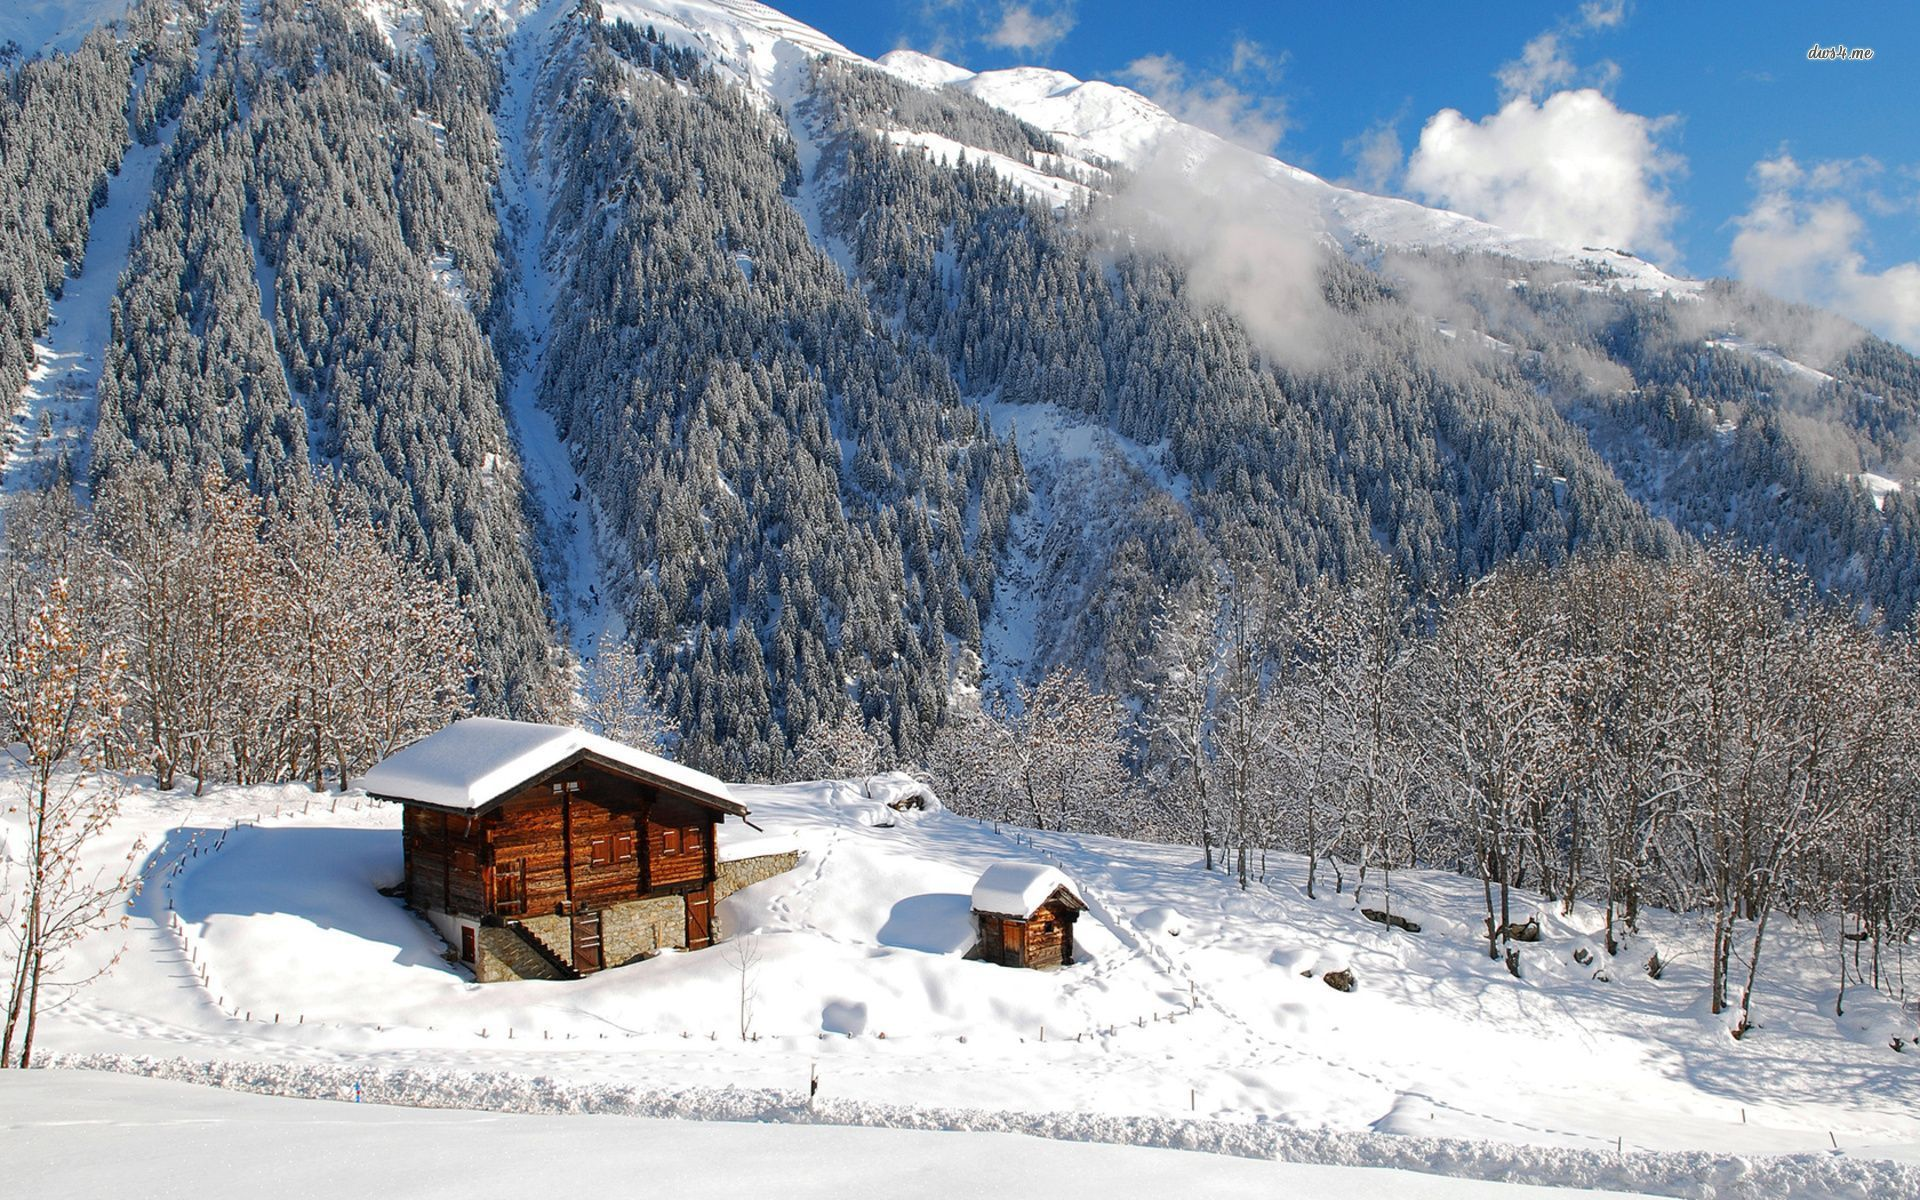 Residential cabin in mountains... Wooden cabins